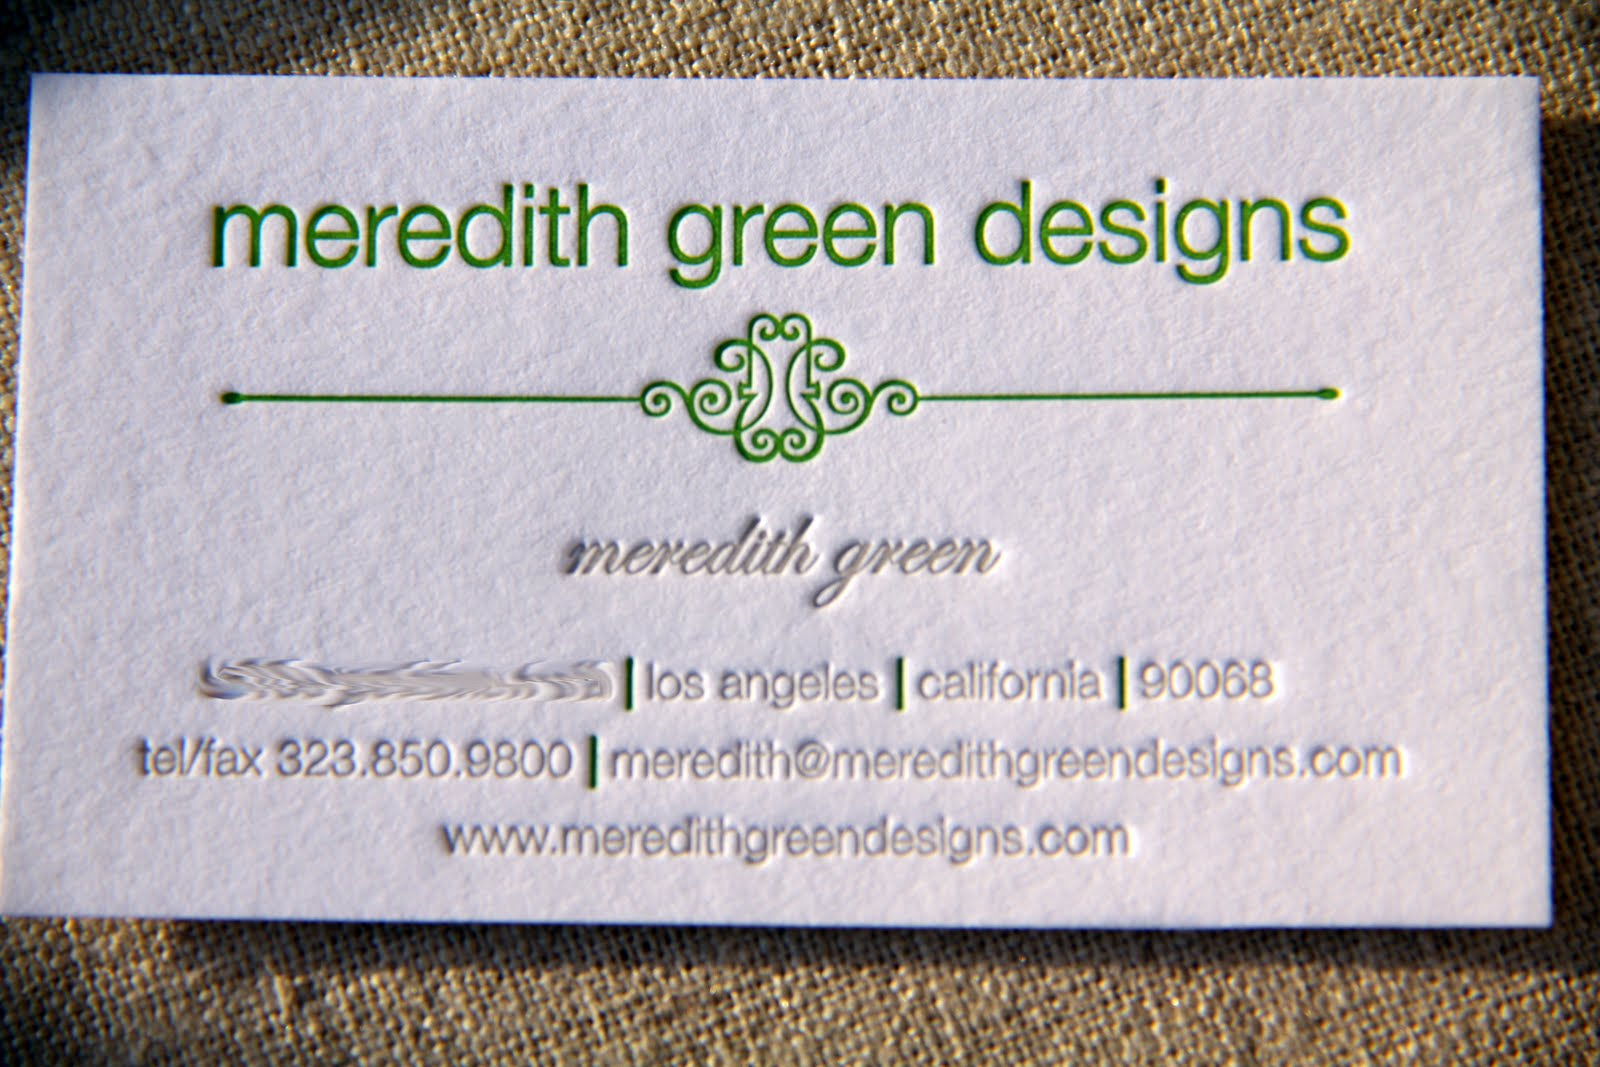 Kiss and Punch Designs: Business card for Meredith Green Designs